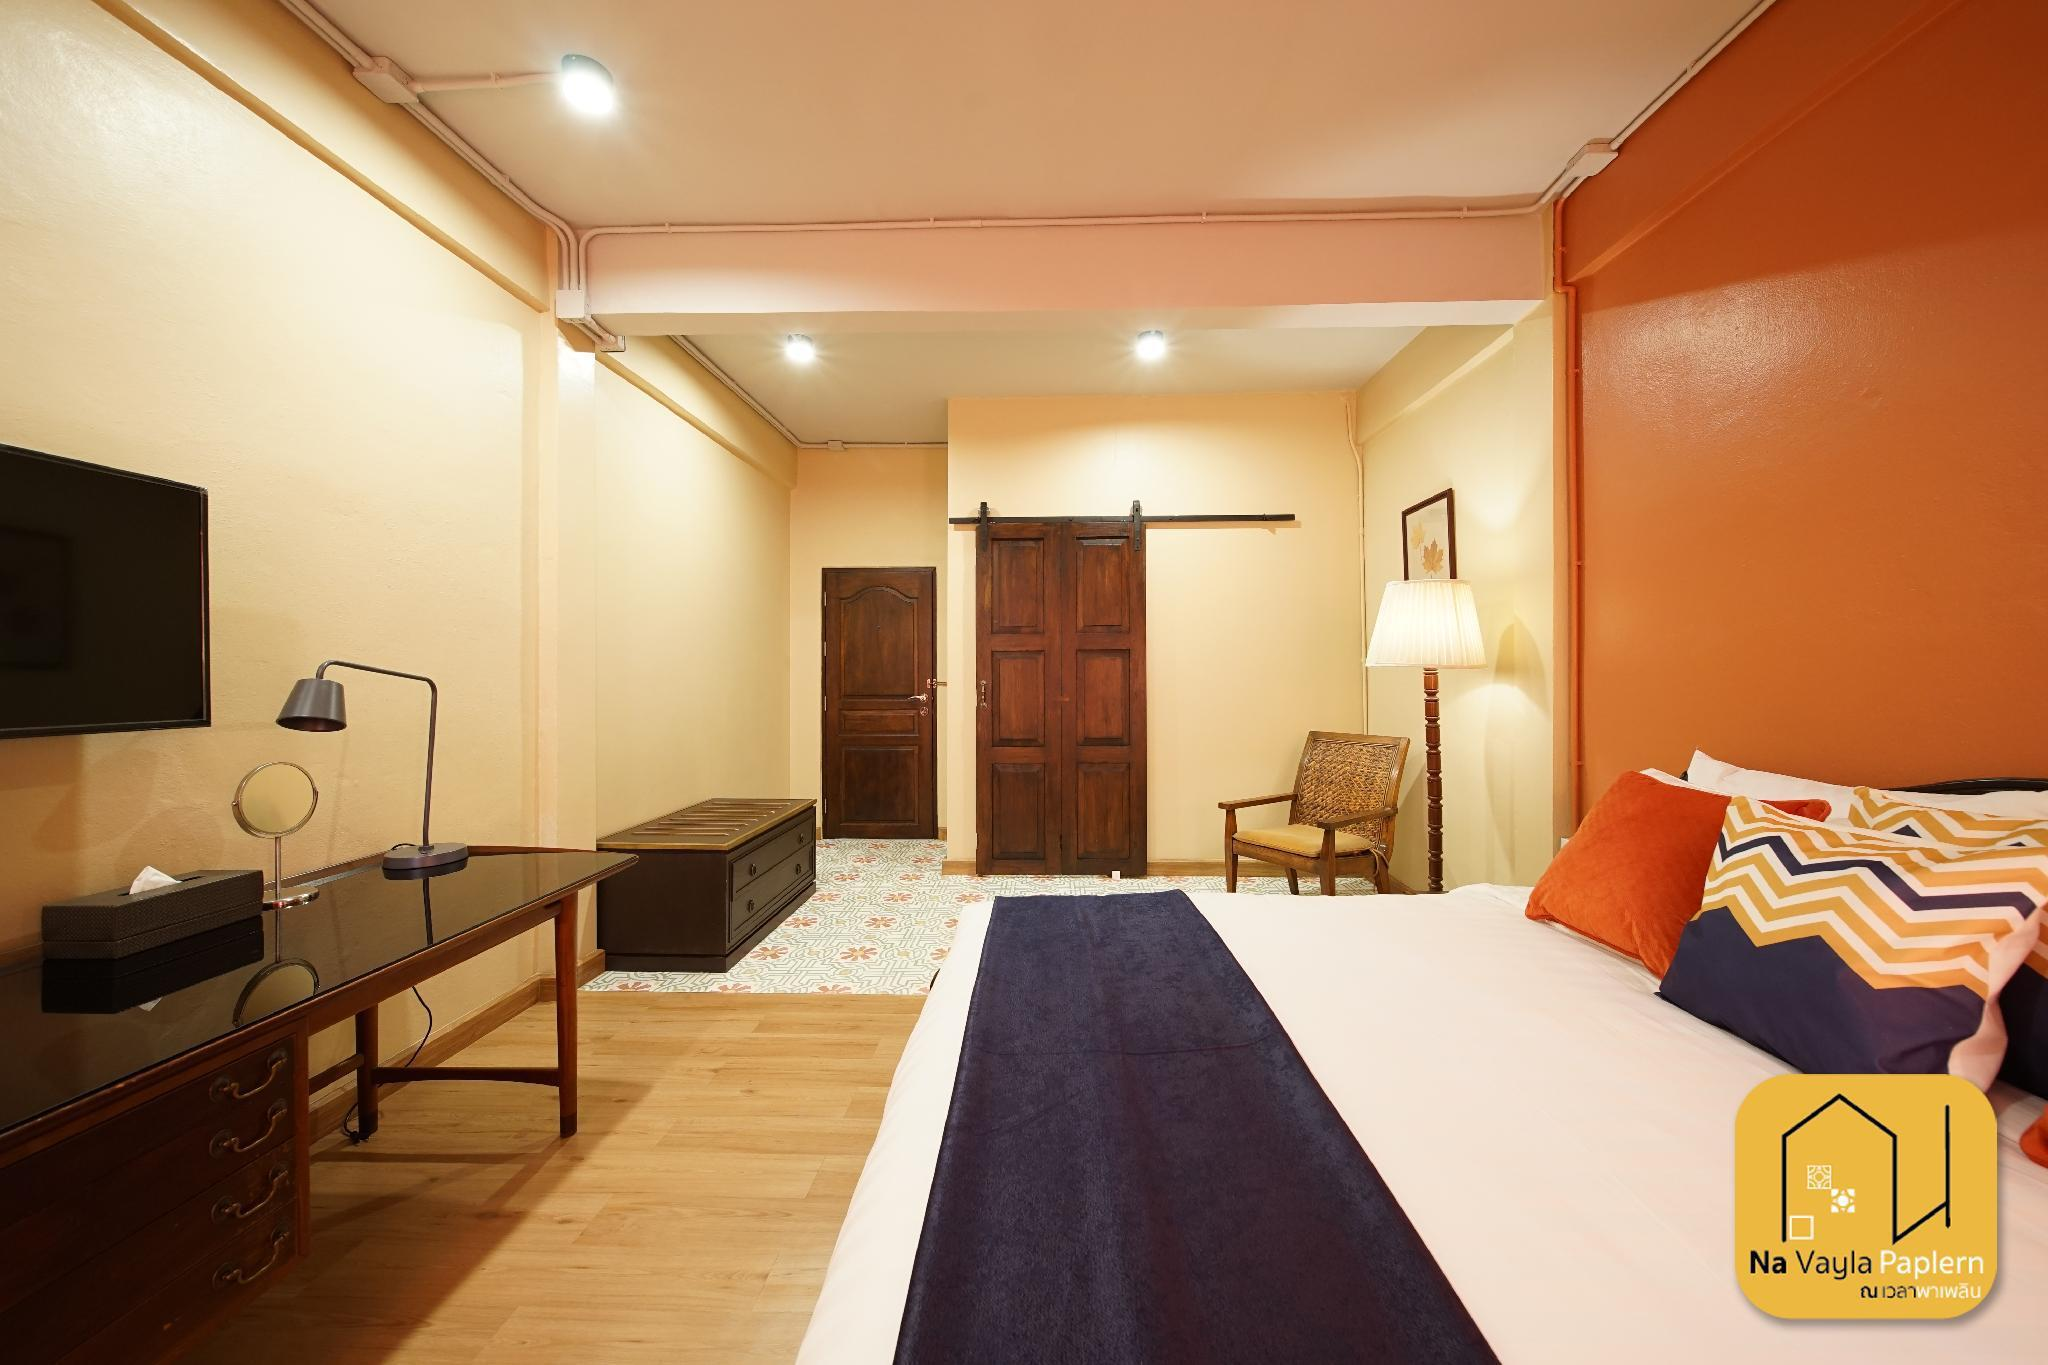 Cozy One Bedroom in the Old Town of Bangkok-ORANGE Cozy One Bedroom in the Old Town of Bangkok-ORANGE